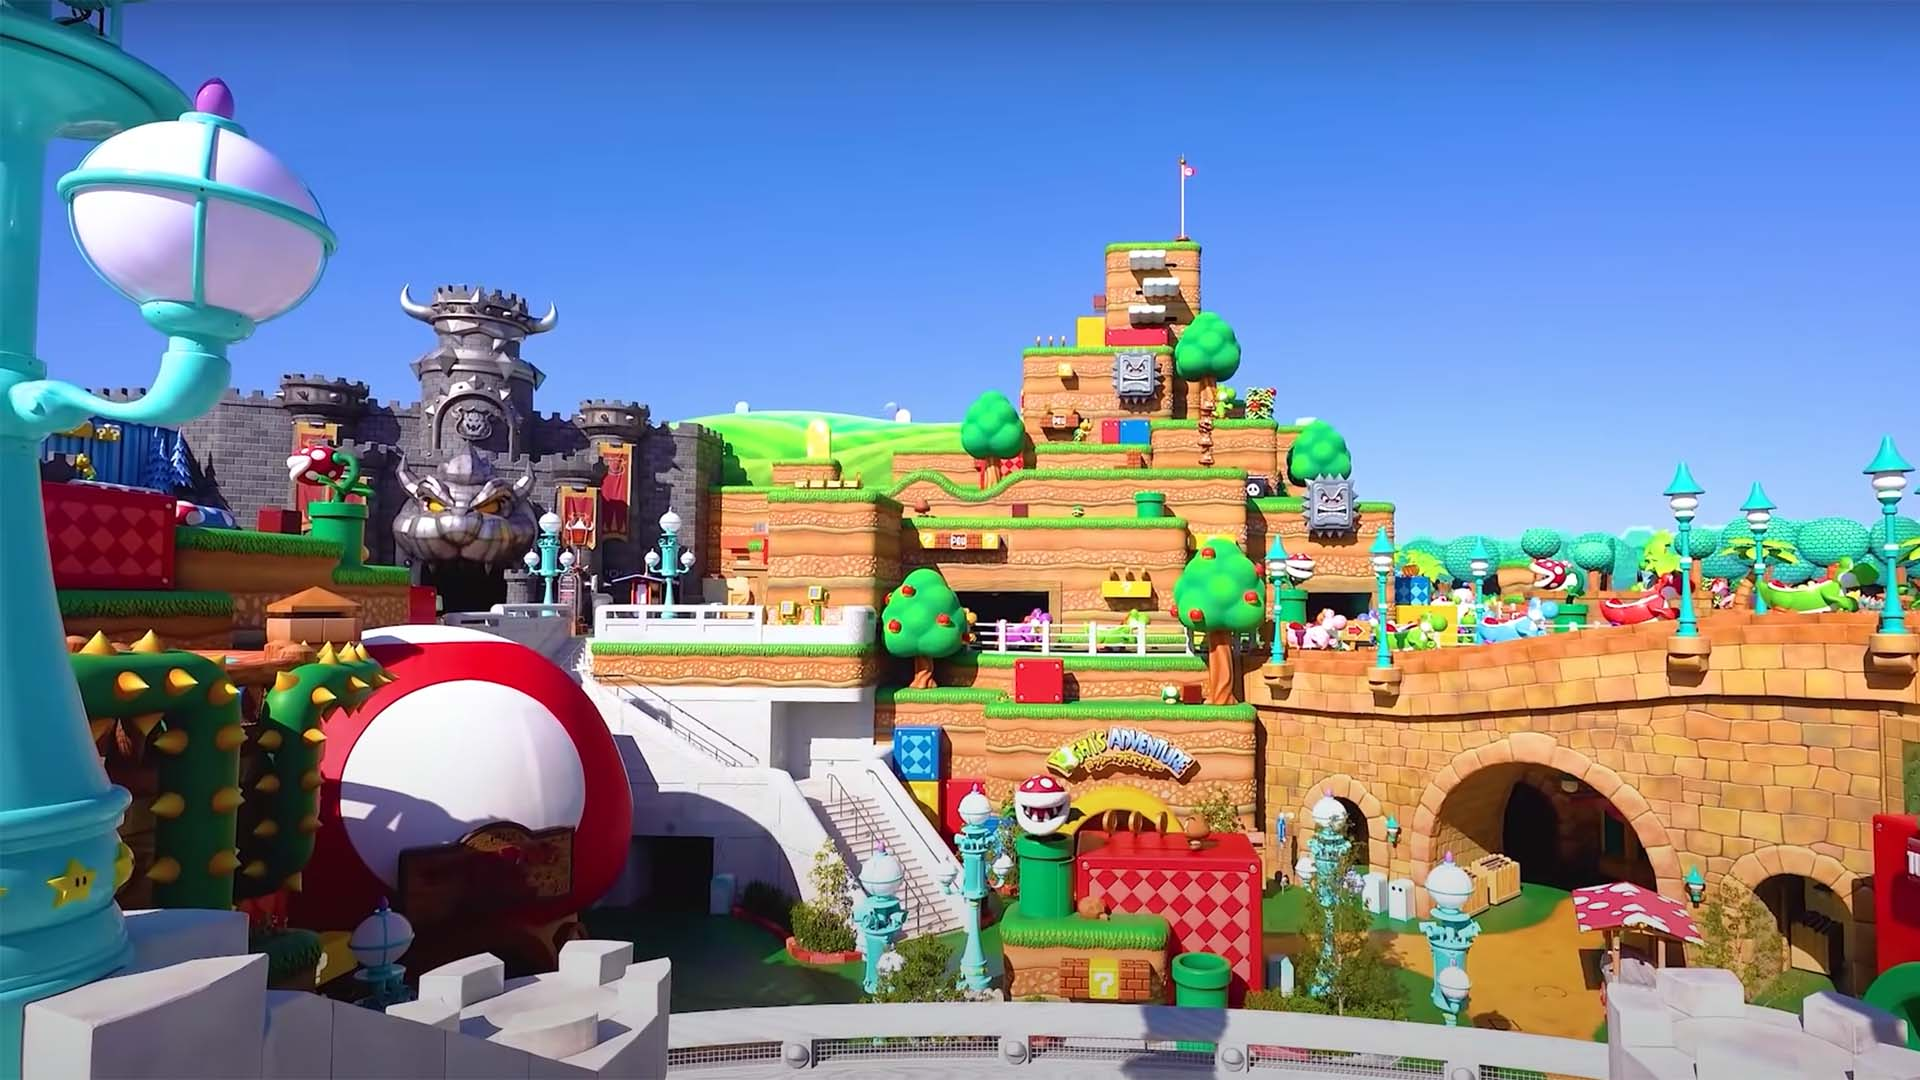 Take a Sneak Peek at Japan's New Super Nintendo Theme Park and Its 'Mario Kart' Ride